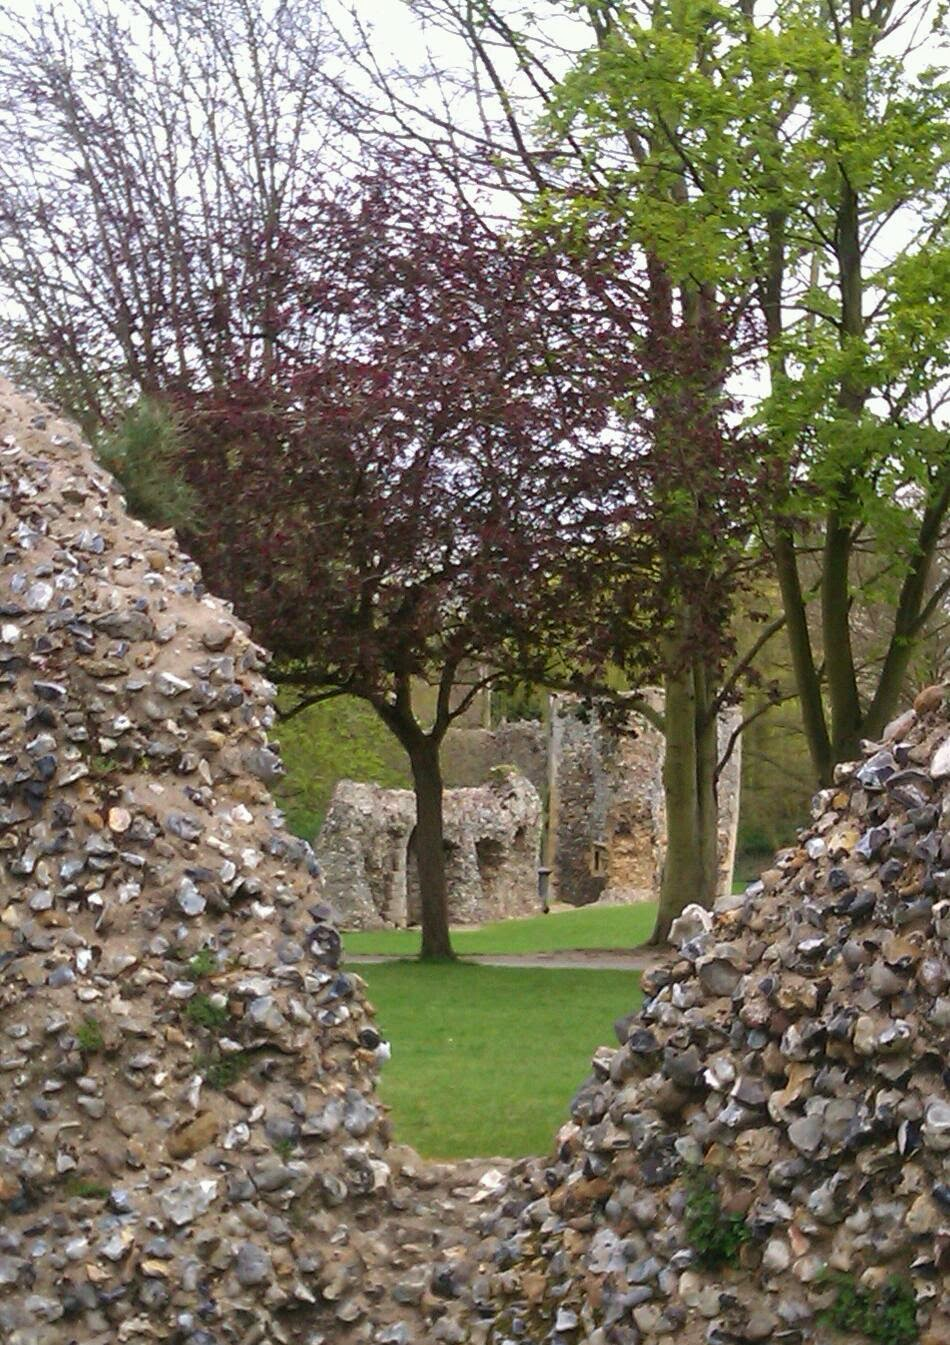 http://www.zazzle.co.uk/abbey_ruins_at_bury_st_edmunds_greeting_card-137957049782870285?rf=238977740256437049